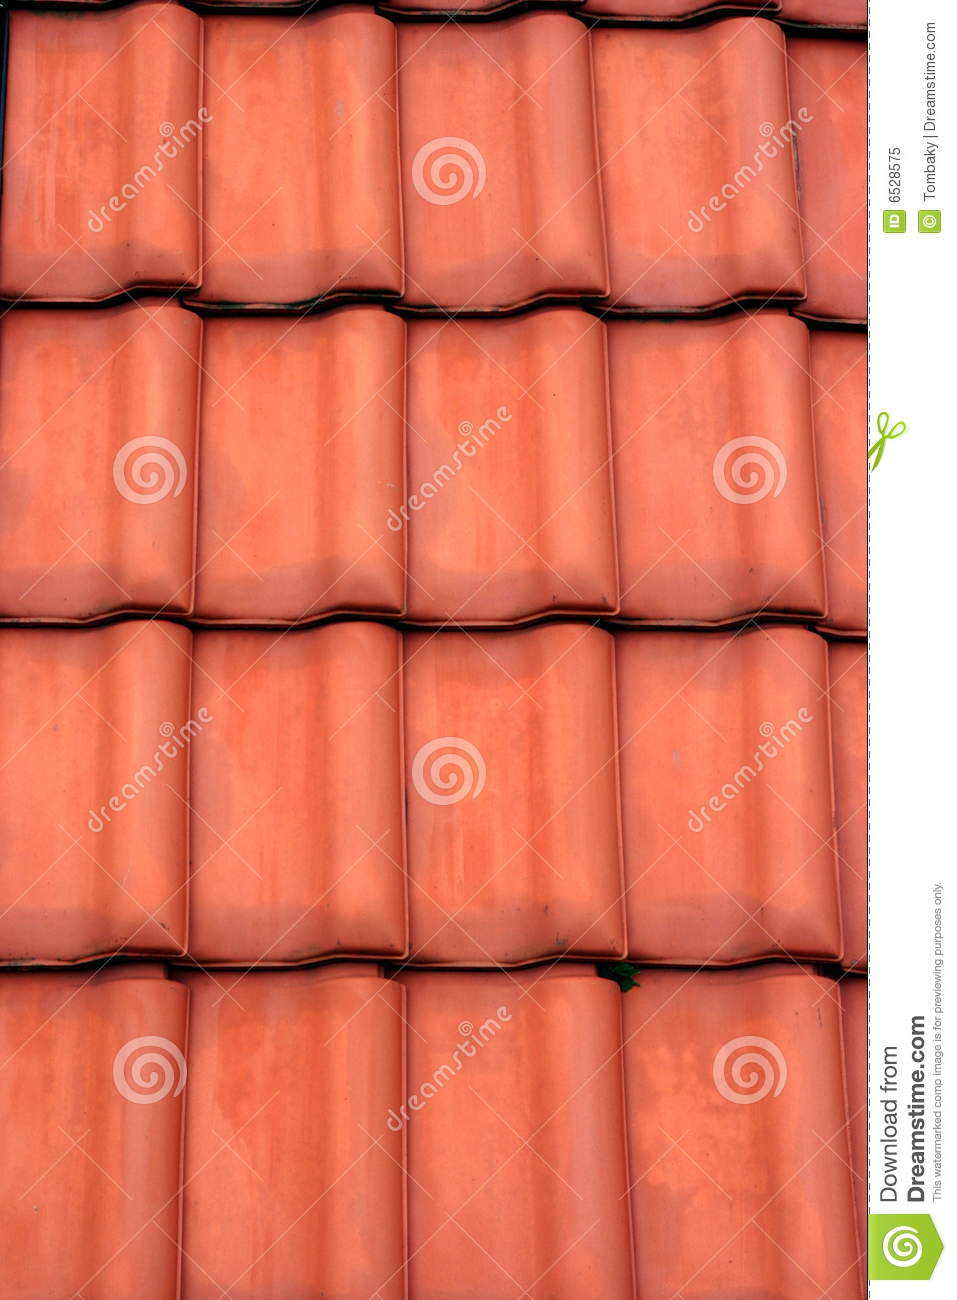 Red Roof Tiles Stock Image Image Of Tile Roof Detail